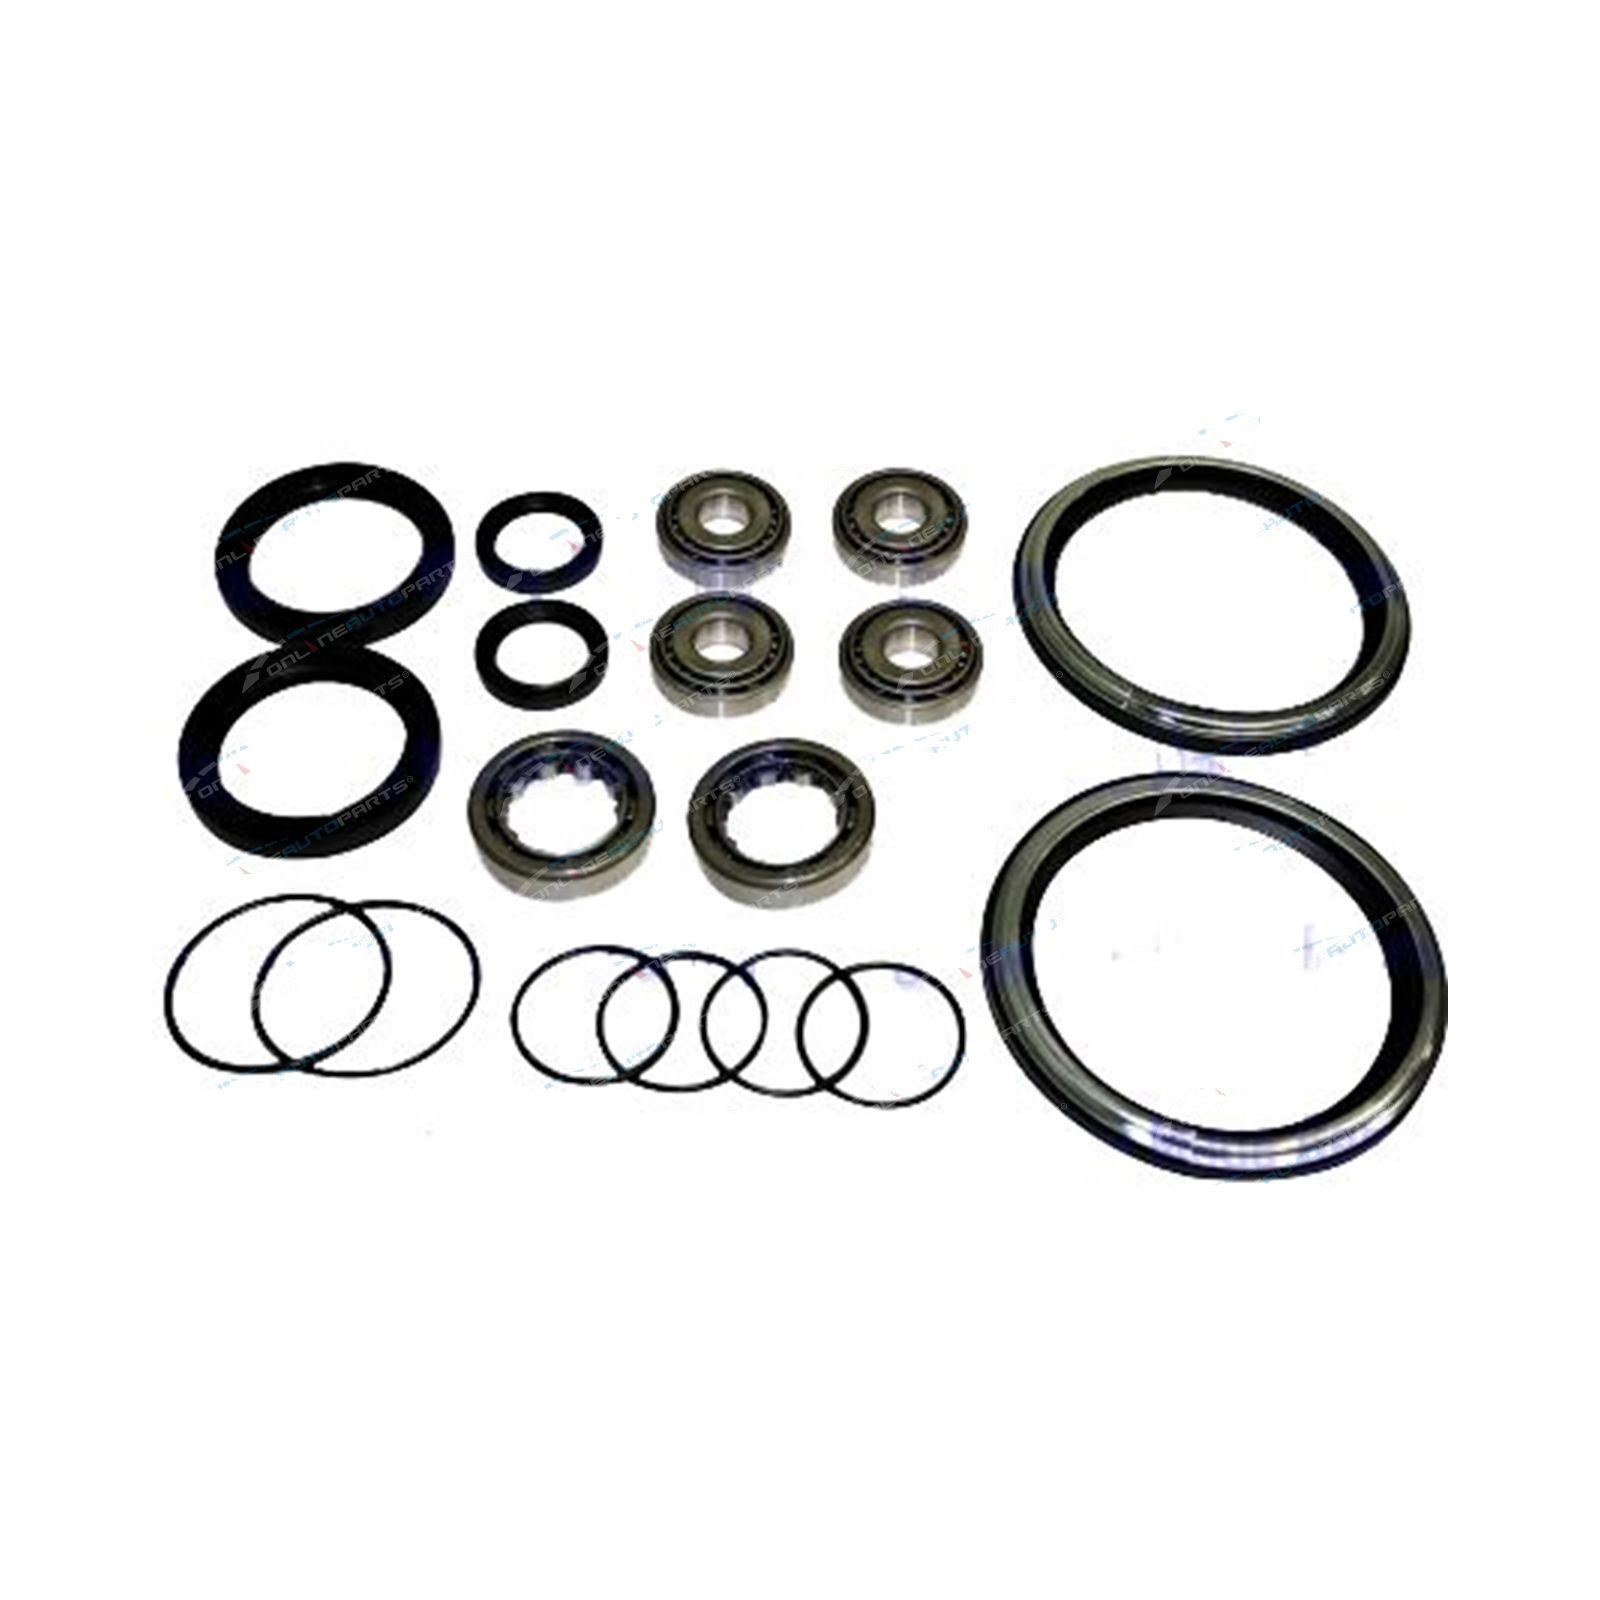 Swivel Hub King Pin Knuckle Bearing Repair Kit G60 suit